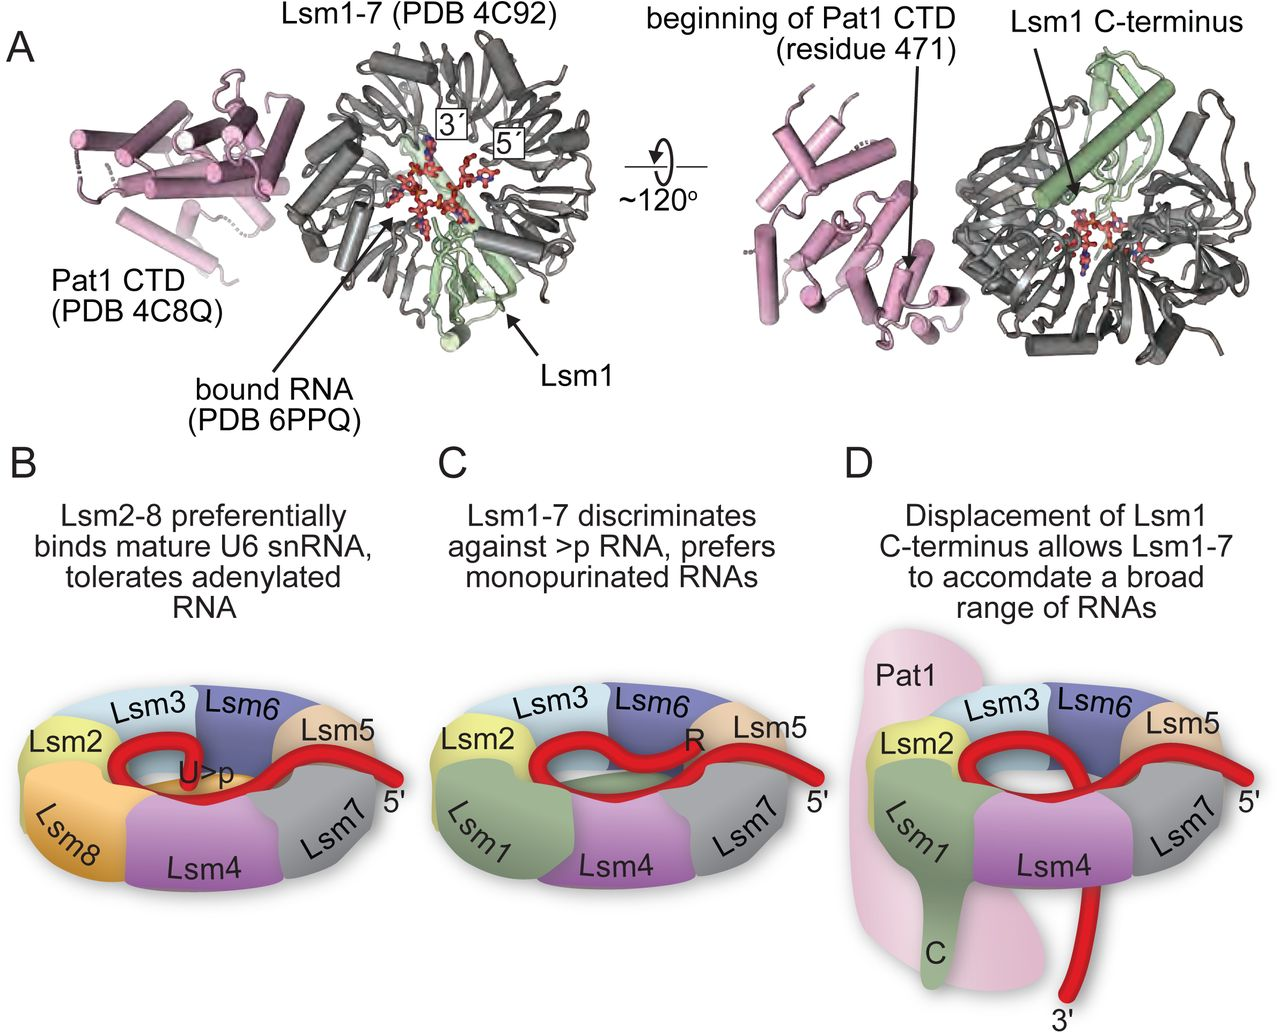 Proposed model for Pat1-regulated gating of the Lsm1-7 RNA-binding pore. A) Relative orientations of RNA, Lsm1-7 and Pat1 proteins, derived from structures of S. pombe Lsm1-7 with RNA and S. cerevisiae Lsm1-7 with the C-terminal domain of Pat1 ( 11 ). B) Model for RNA binding specificity in Lsm rings. The Lsm2-8 ring contains a uridine-cyclic phosphate binding site that includes the C-terminus of Lsm8 and endows specificity for Usb1 processed U6 snRNA. C) In contrast, the C-terminal region of Lsm1 in the Lsm1-7 ring antagonizes association of the ring with uridine-cyclic phosphate terminated RNA, while allowing association of the ring with 3′ monopurinated polyuridylate tracts. D) Deletion of the C-terminal region of Lsm1 allows the ring to associate with a broader range of RNAs. In vivo , the role of Lsm1 truncation may be mimicked by displacement of the C-terminus by association of the ring with the Pat1 co-factor. It remains to be seen if RNA is capable of threading all the way through the pore of the RNA, as depicted here, or rather enters and exits the pore on the proximal face alone.